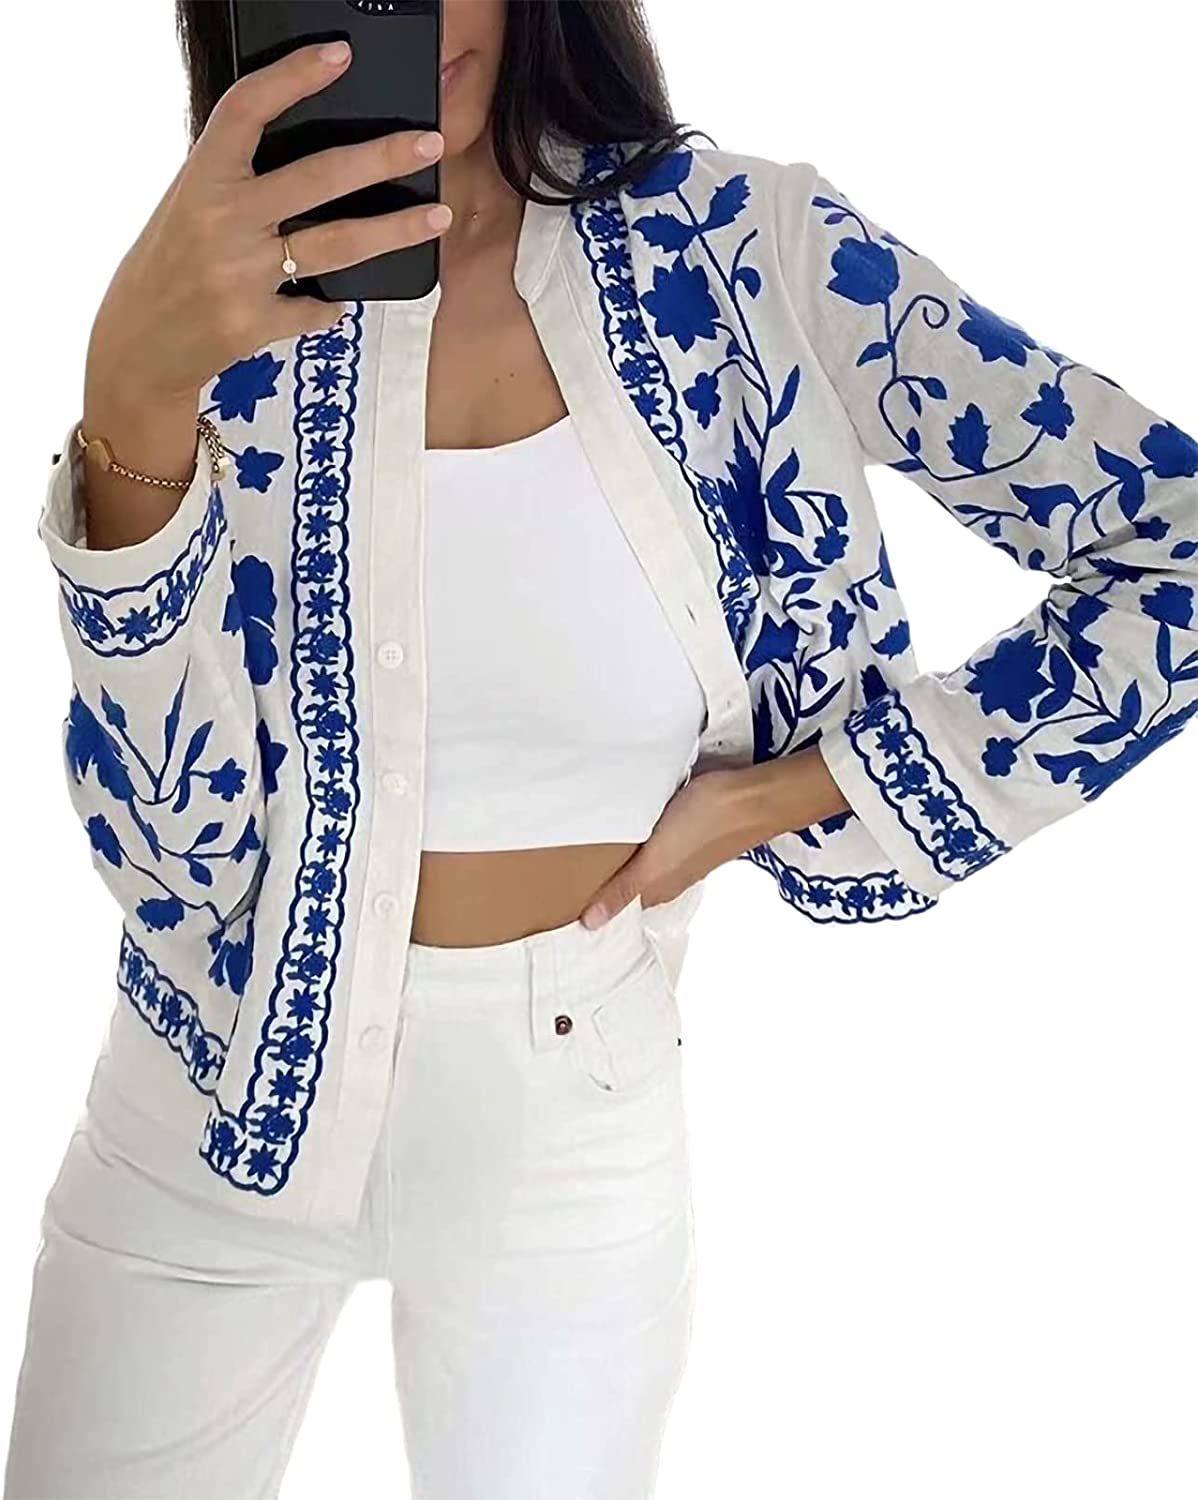 Women's Spring Summer Fall Long Sleeve Blue White Floral Print Button Down Casual V-Neck Coat Jacket Shirt Jacket Outwear